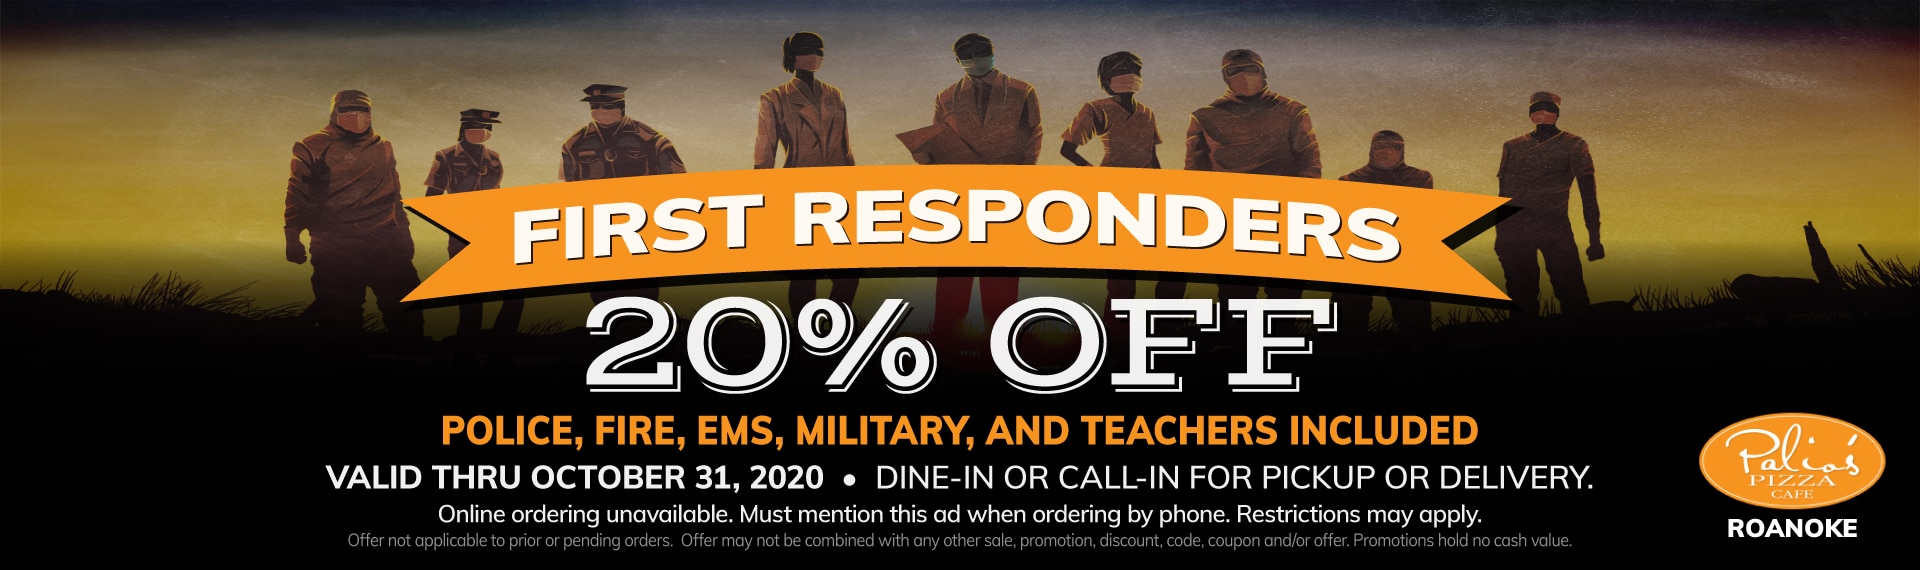 First Responders - Police, Fire, EMS, Military and Teachers 20% Off